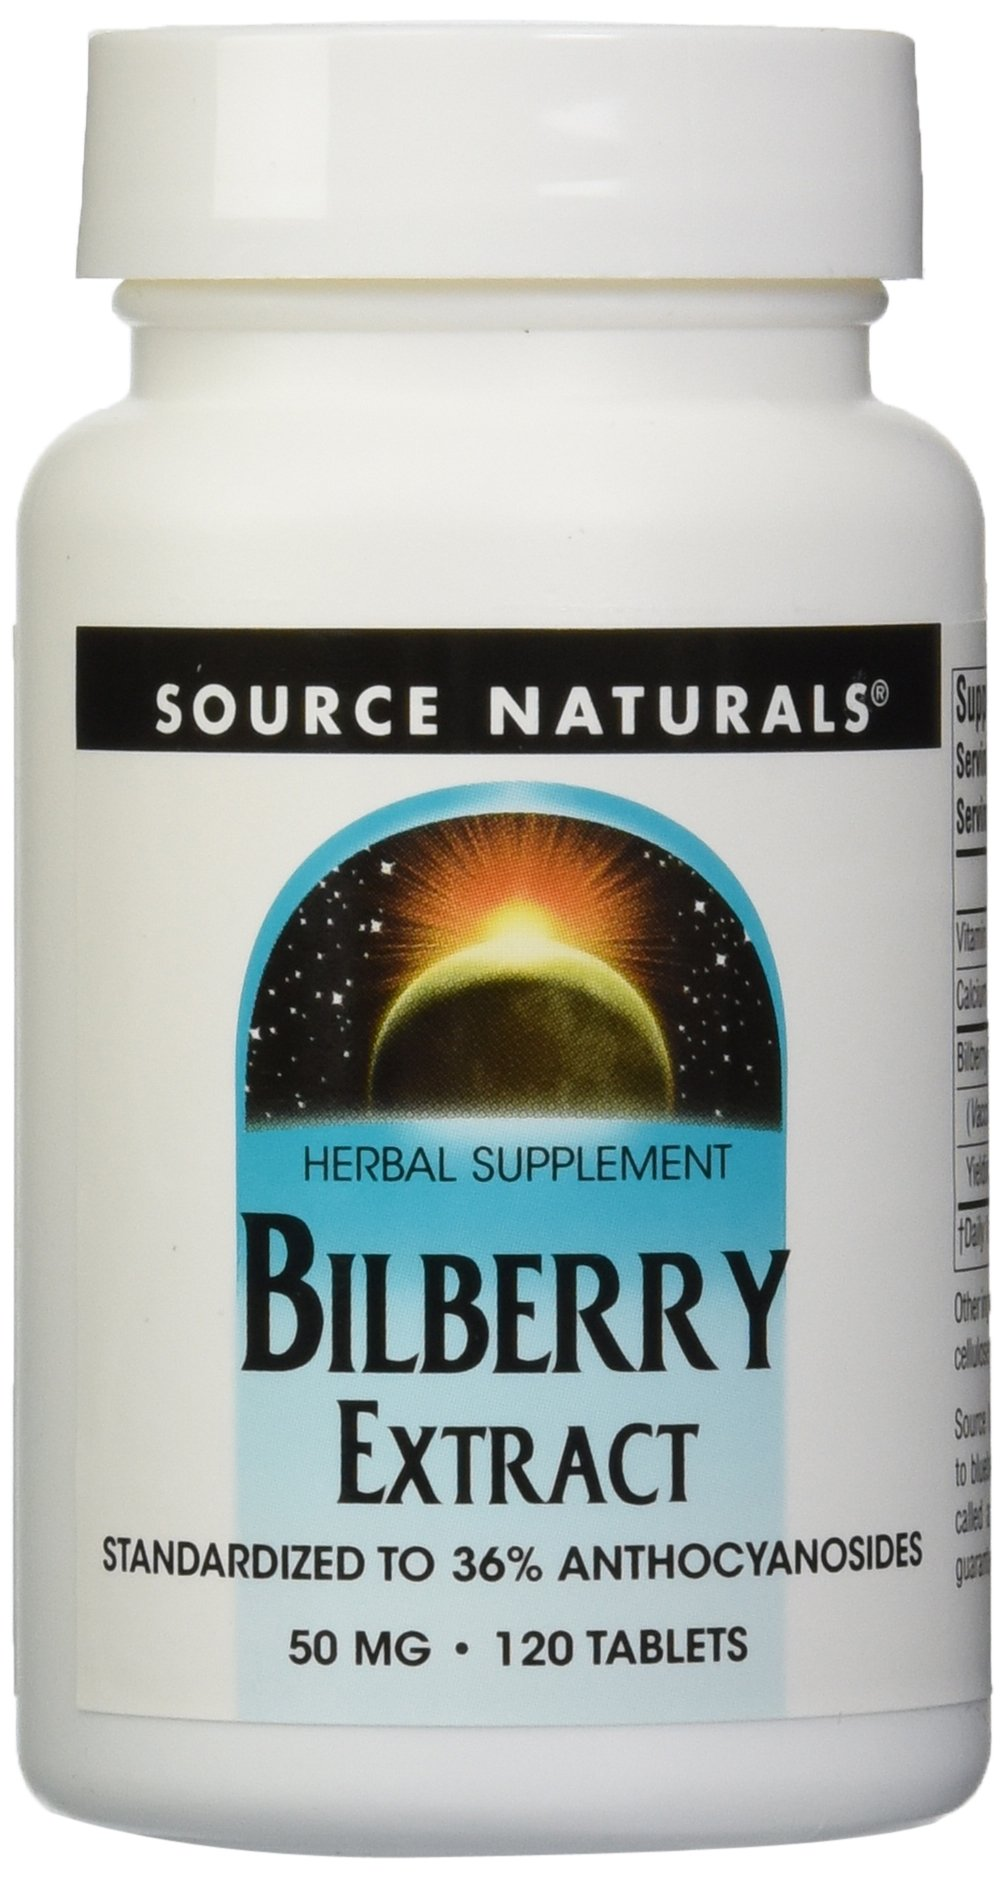 Source Naturals Bilberry Extract 50mg, 120 120 Tablets (Pack of 12)